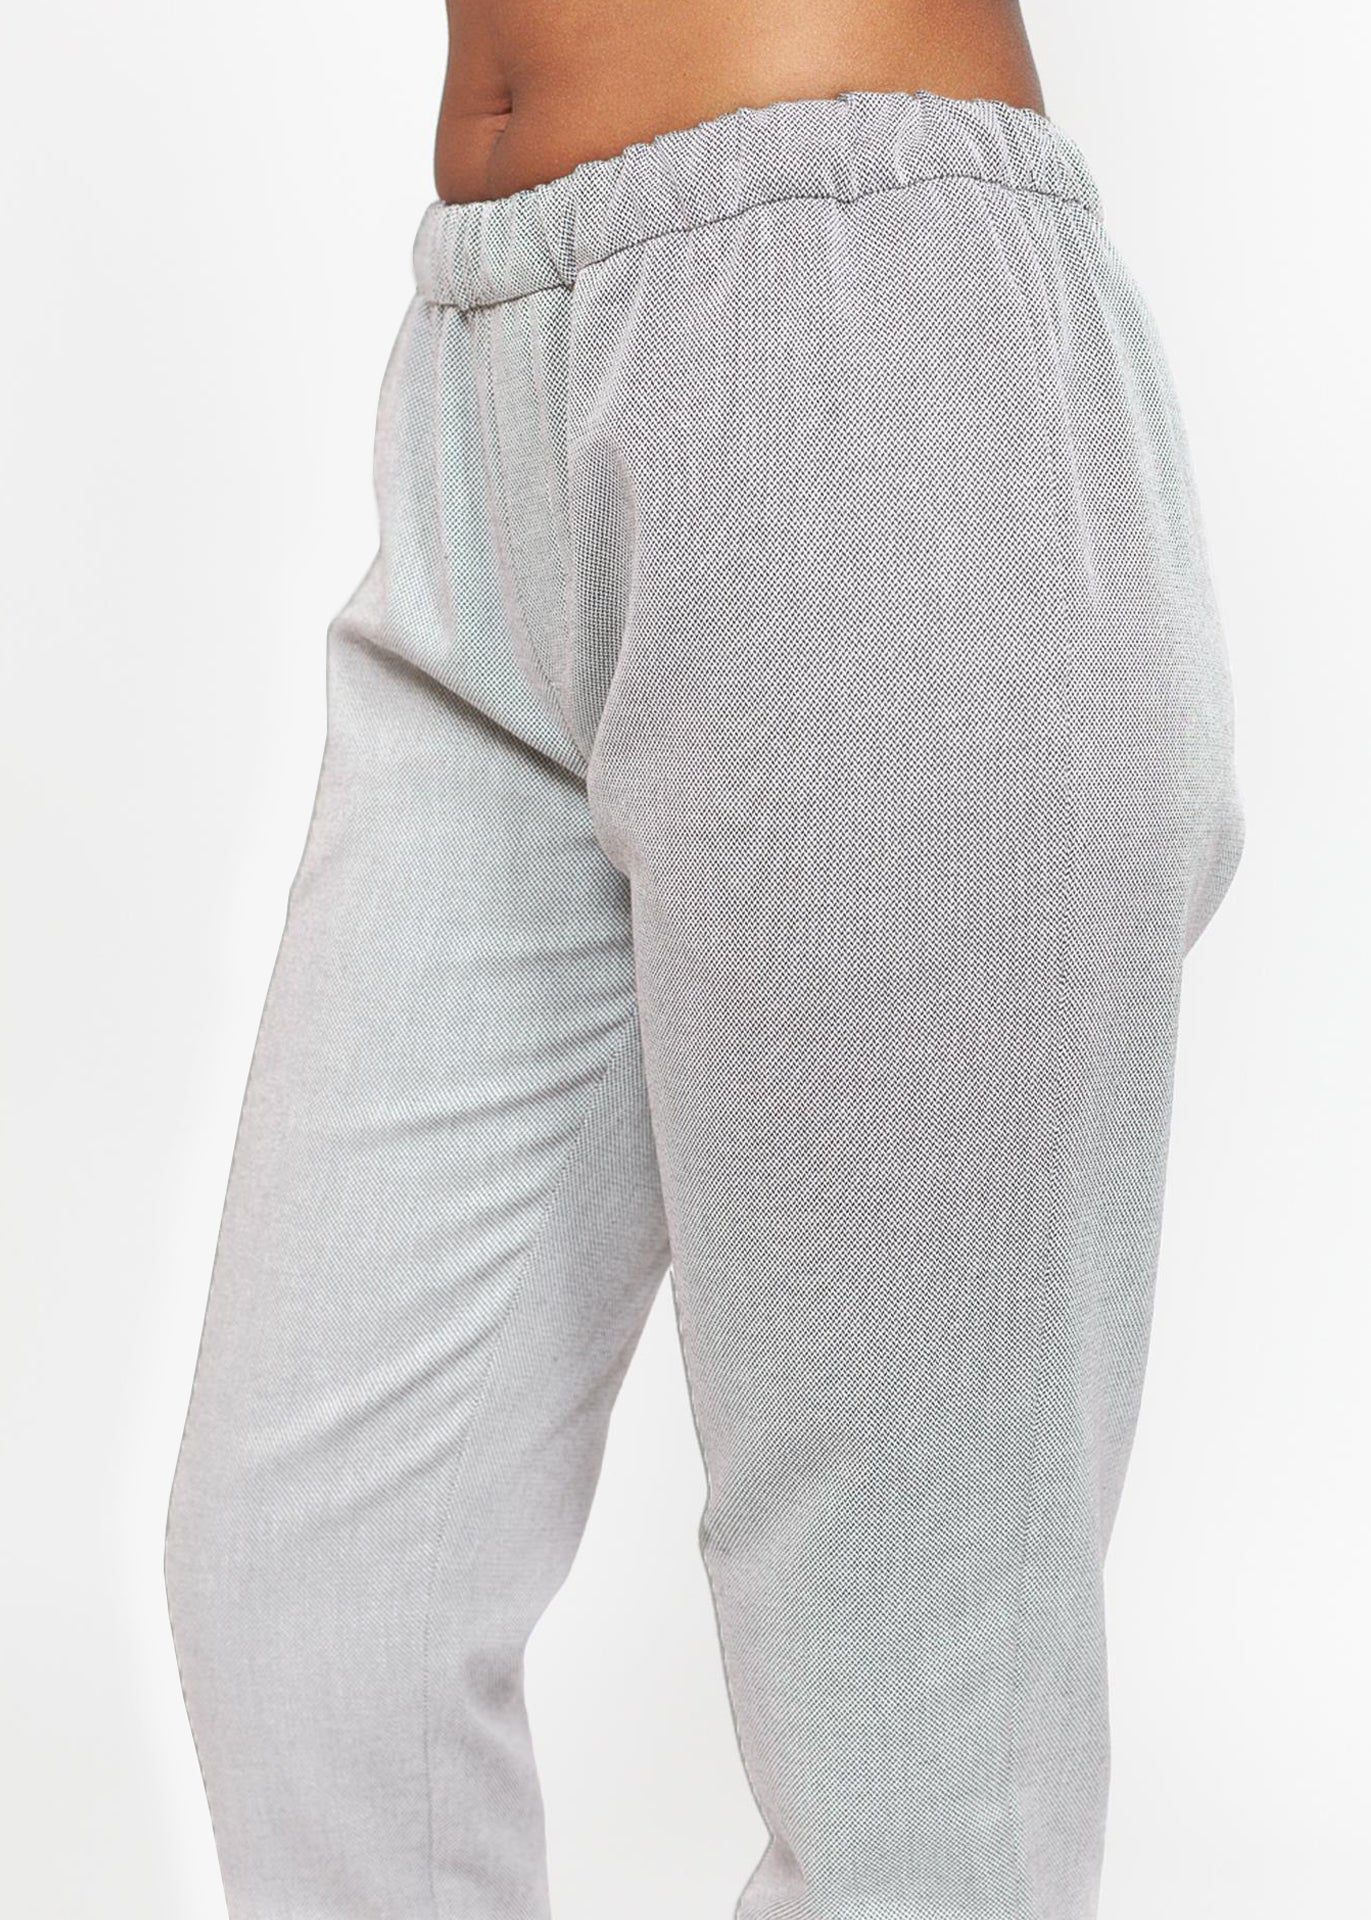 Cecil - Slim-leg Pants in Grey